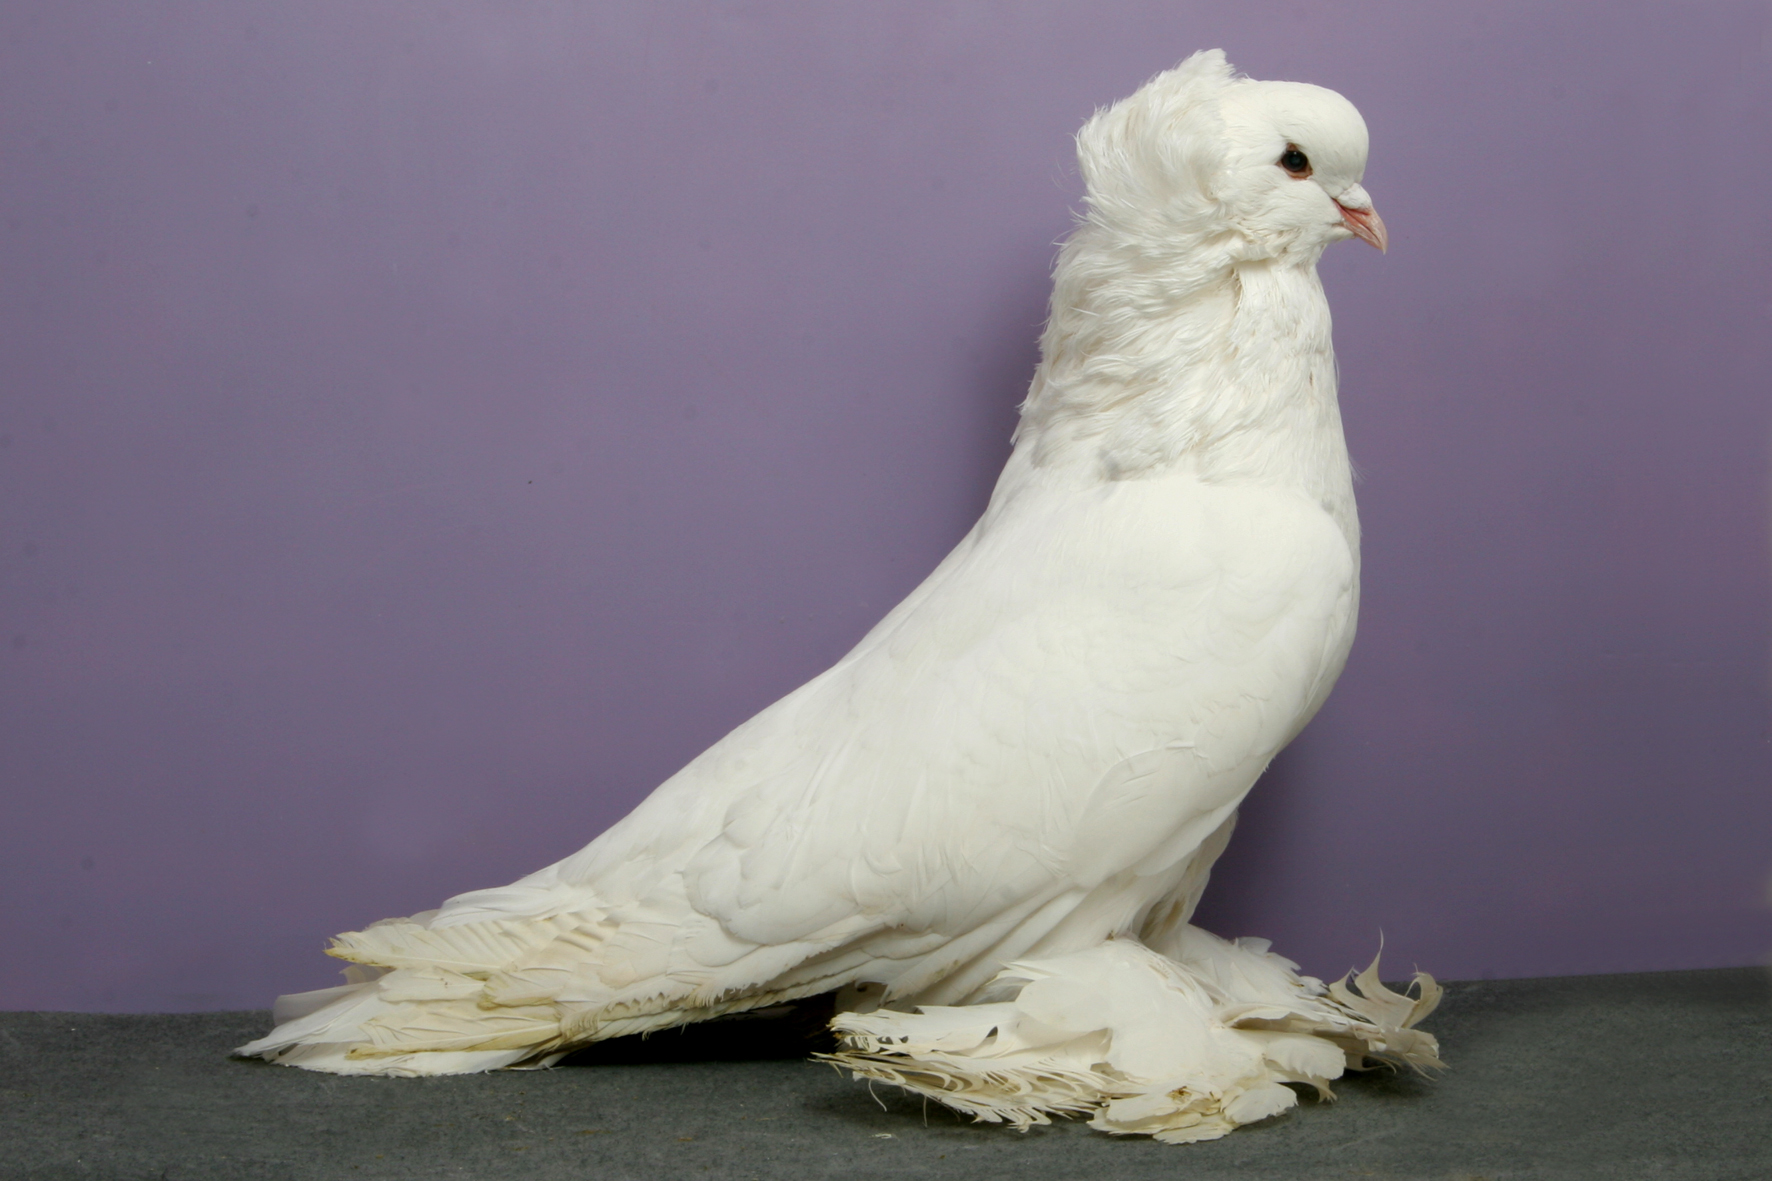 Bird Pigeon 300 Spikes en acier inoxydable insectifuge antiparasitaire chats 5X50cm dissuasion Kit